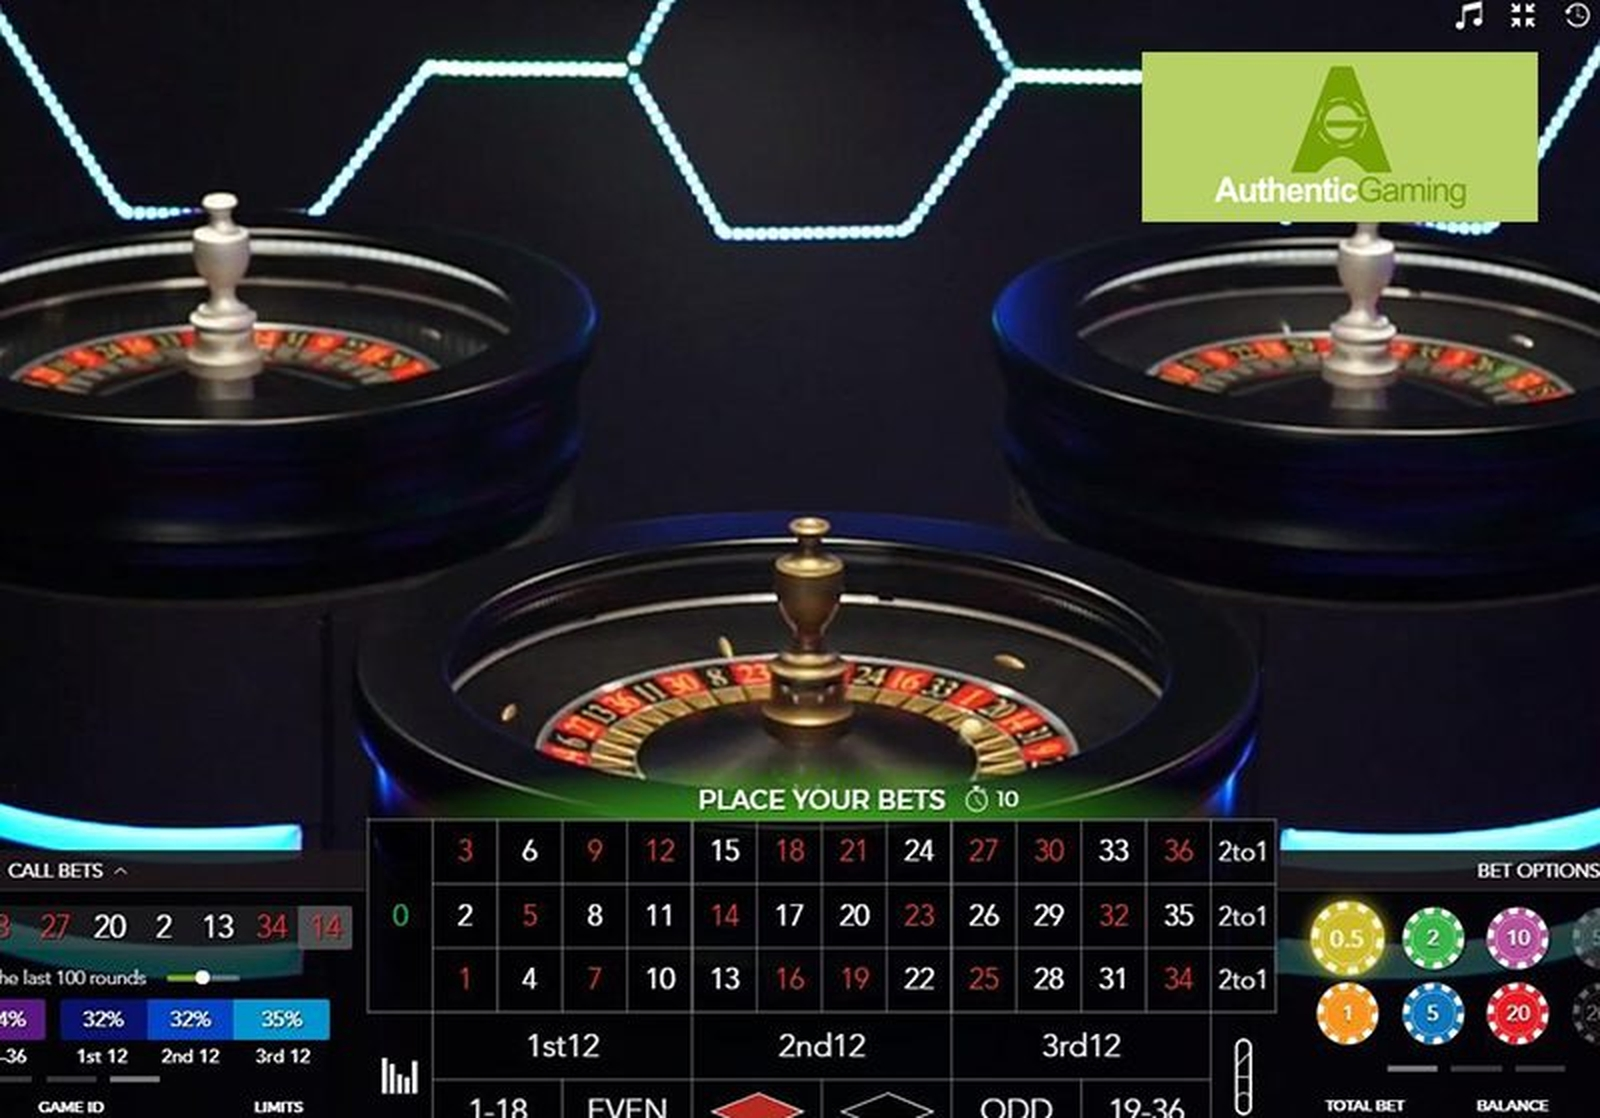 The Duo Live Auto Roulette Online Slot Demo Game by Authentic Gaming